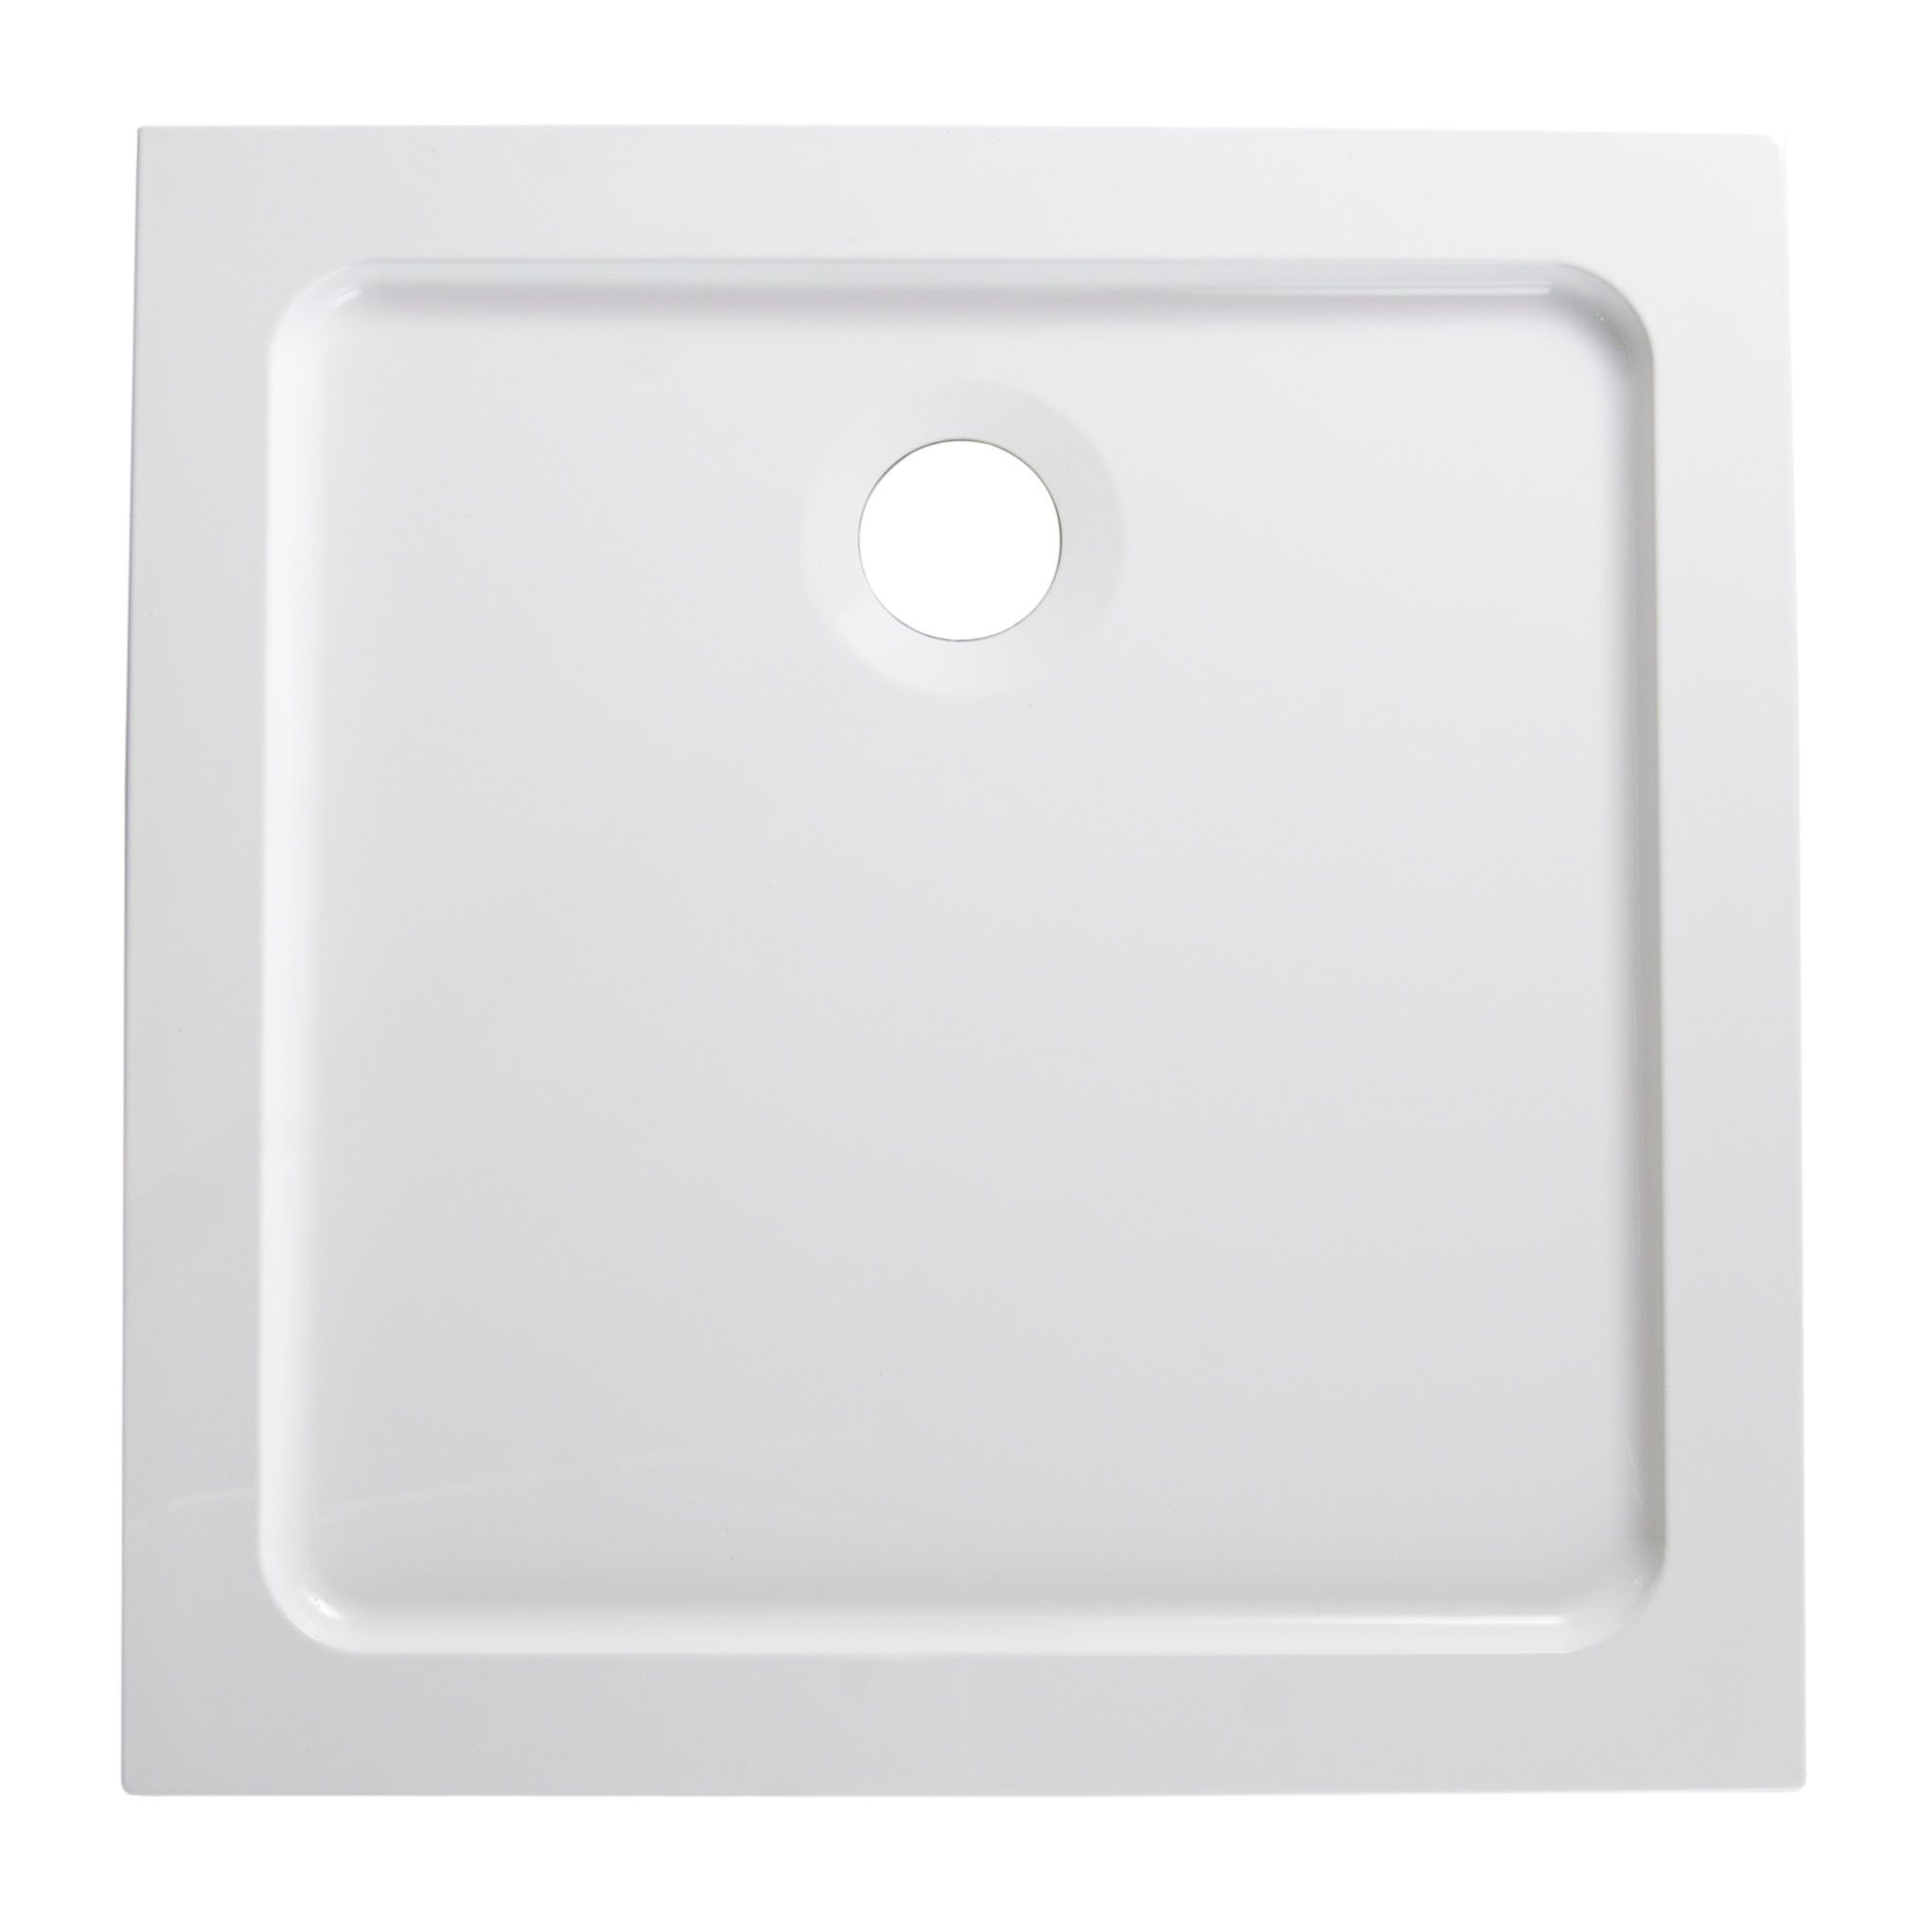 B Amp Q Low Profile Square Shower Tray L 760mm W 760mm D